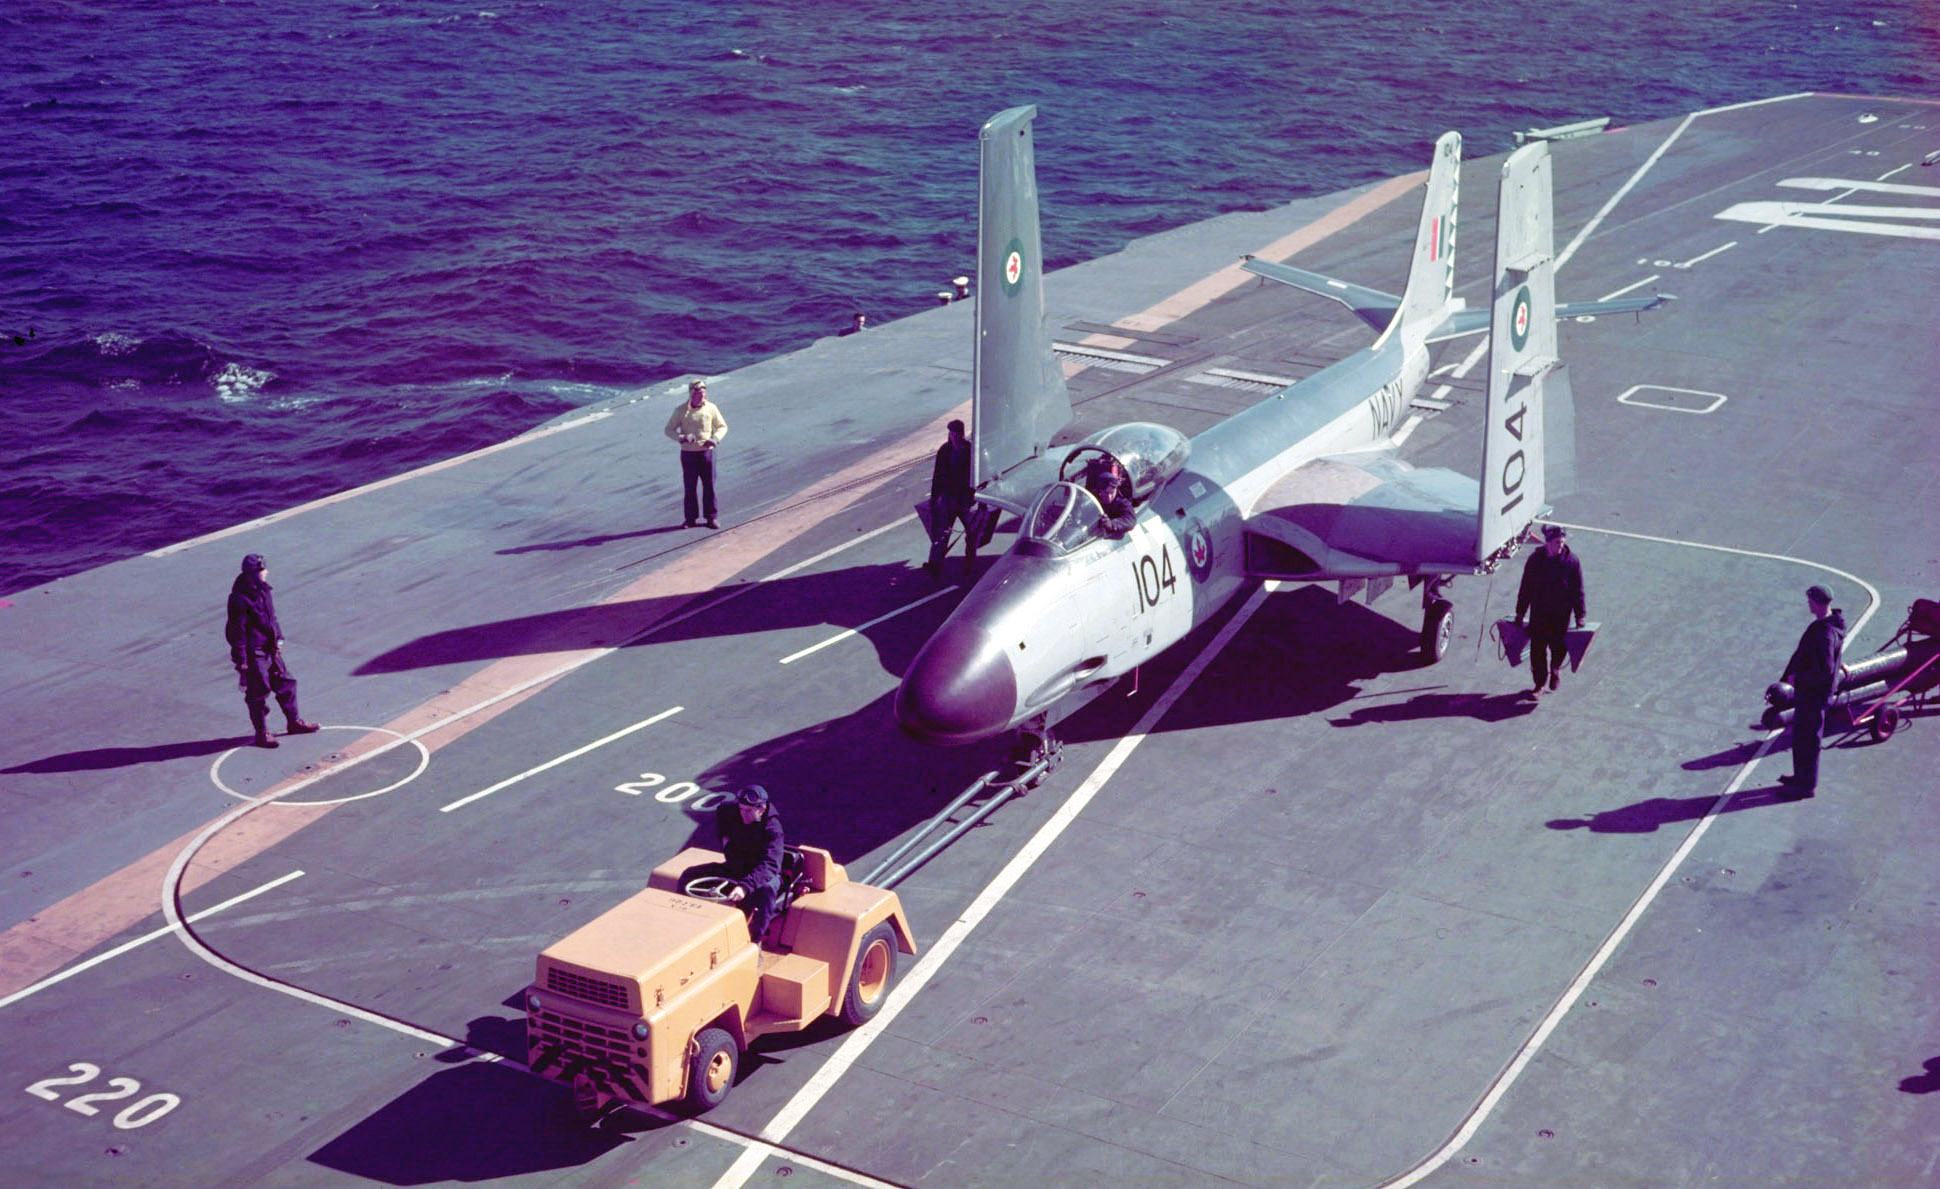 Mule pulling Banshee aircraft, wings folded, along the flight deck.